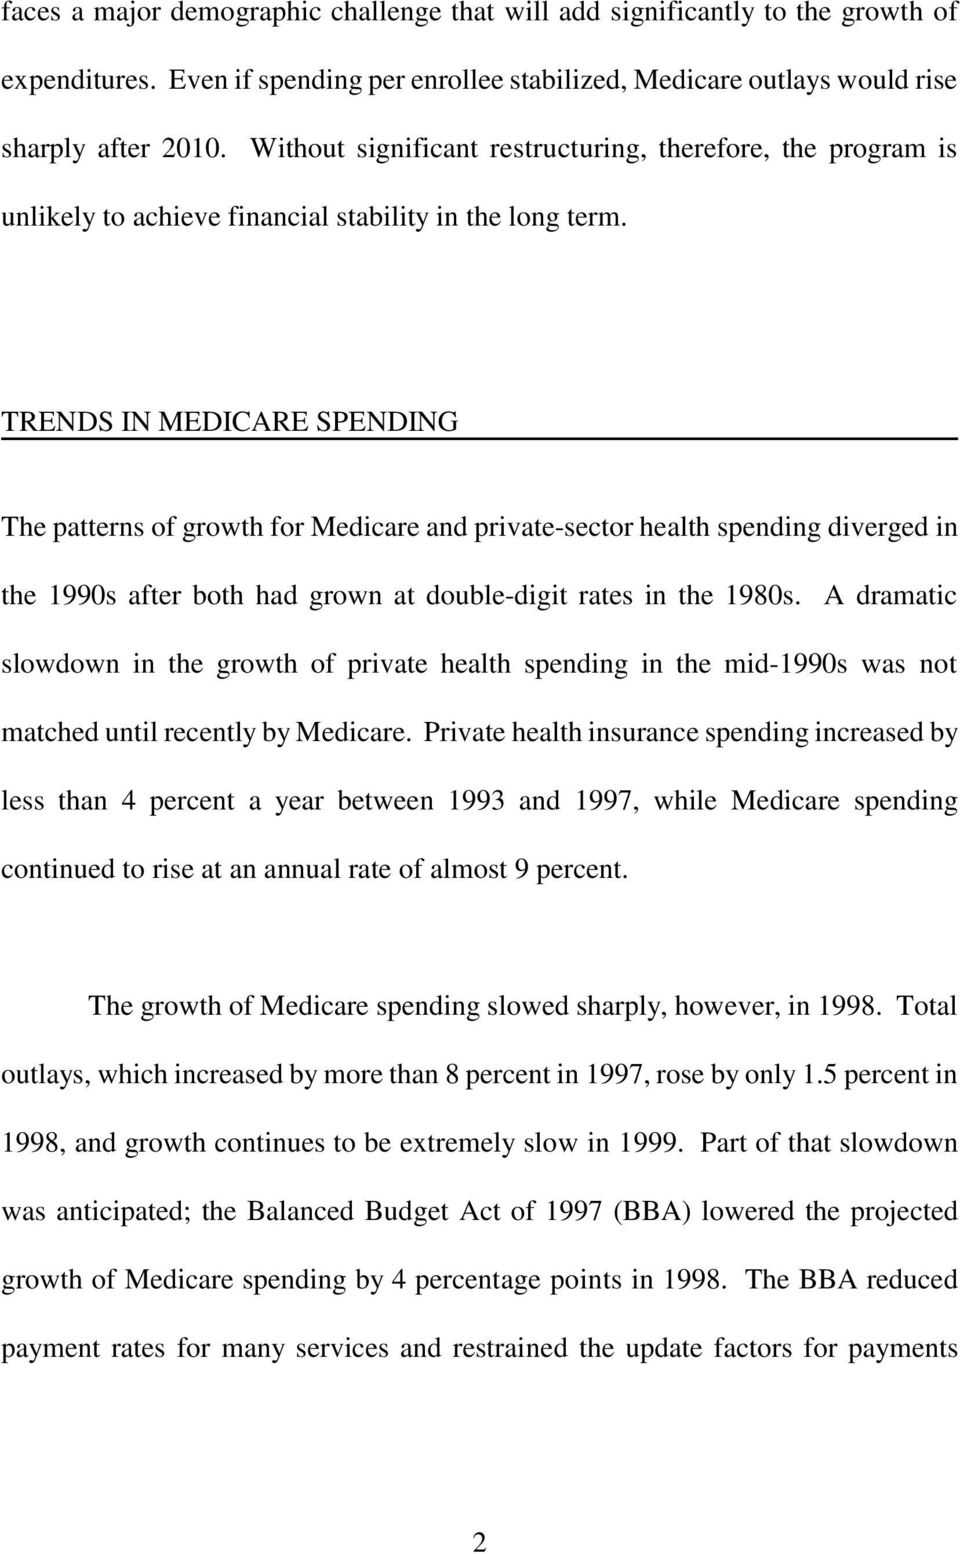 TRENDS IN MEDICARE SPENDING The patterns of growth for Medicare and private-sector health spending diverged in the 1990s after both had grown at double-digit rates in the 1980s.